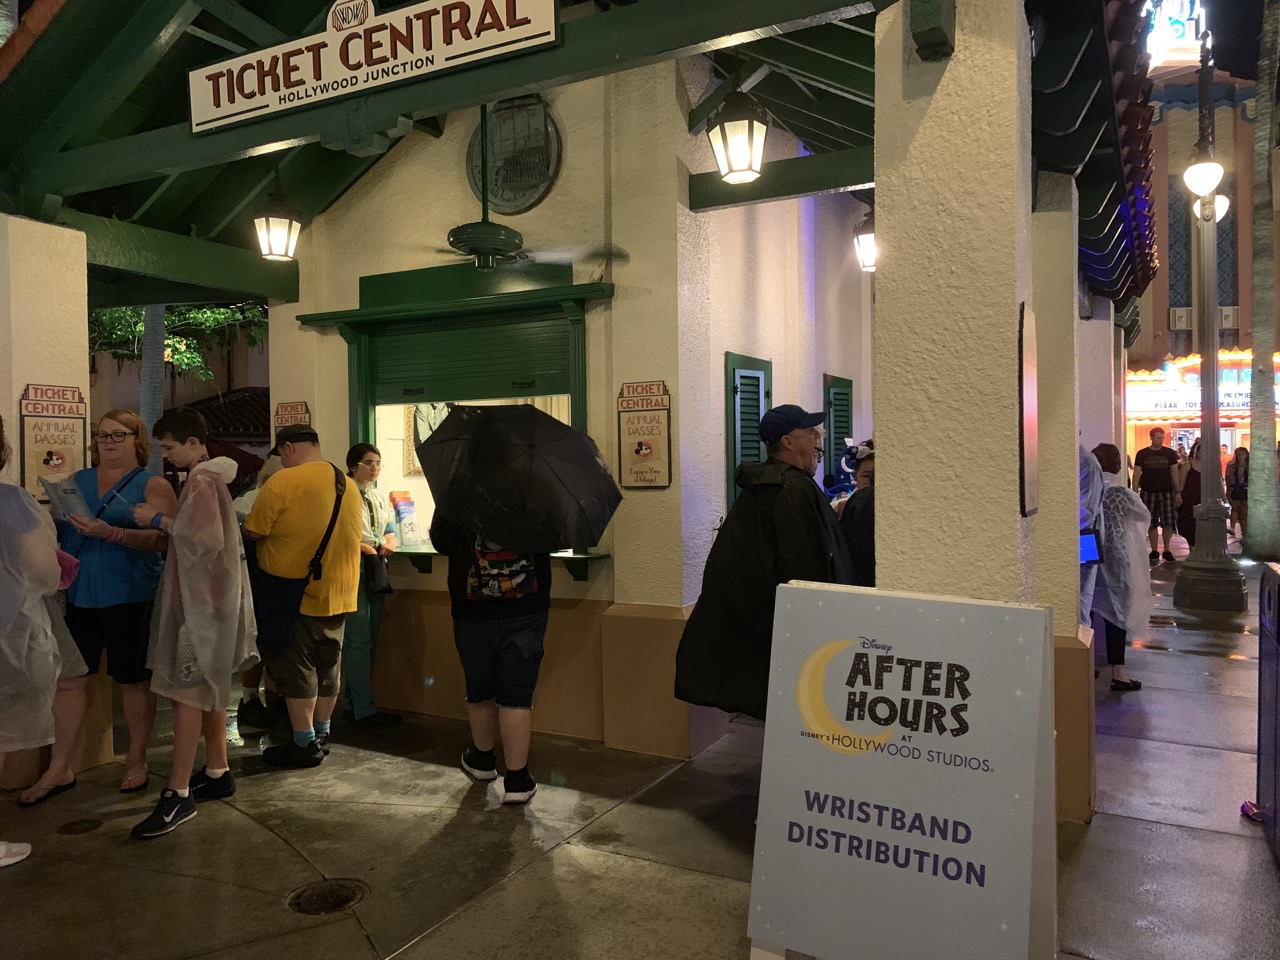 disney world hollywood studios after hours review 02 wristband distribution.jpeg